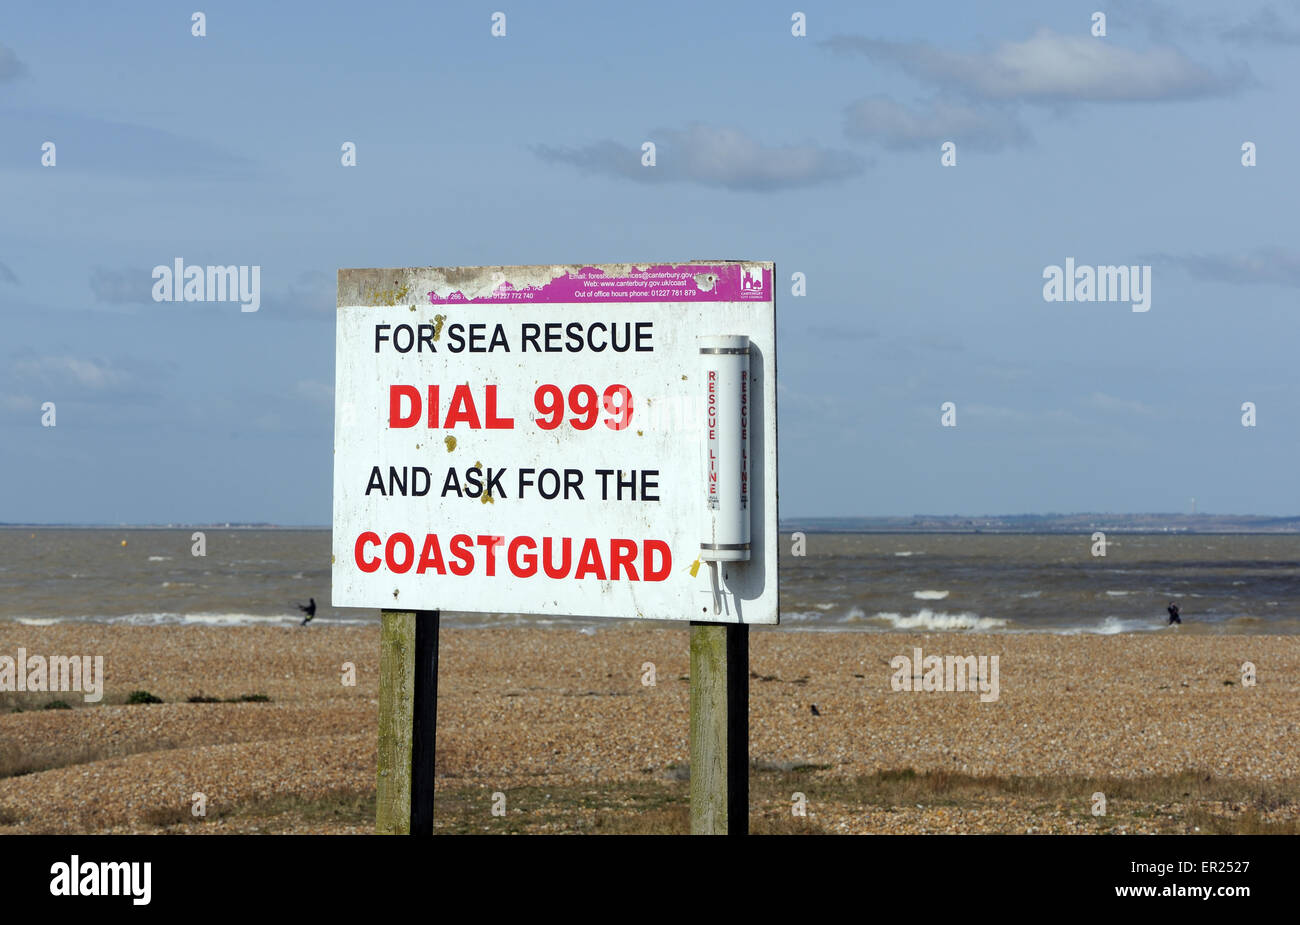 A sign on the beach at Whitstable saying dial 999 for the coastguard. Whitstable, Kent, UK. - Stock Image